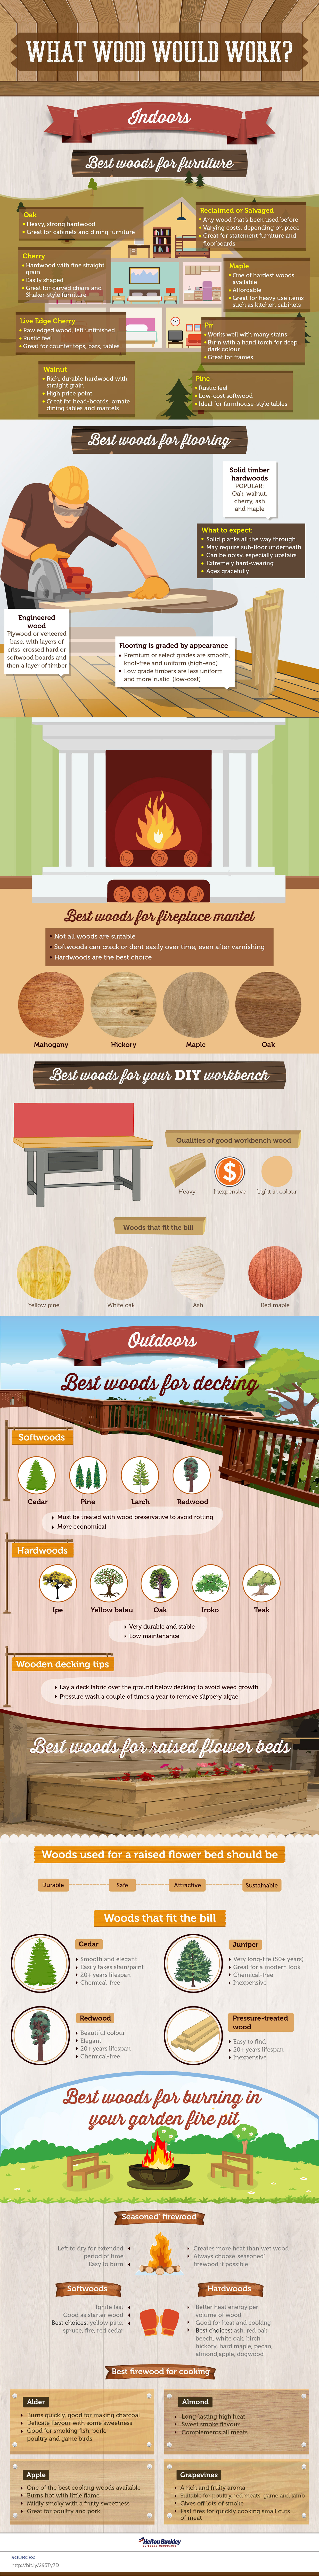 What Wood Would Work Infographic